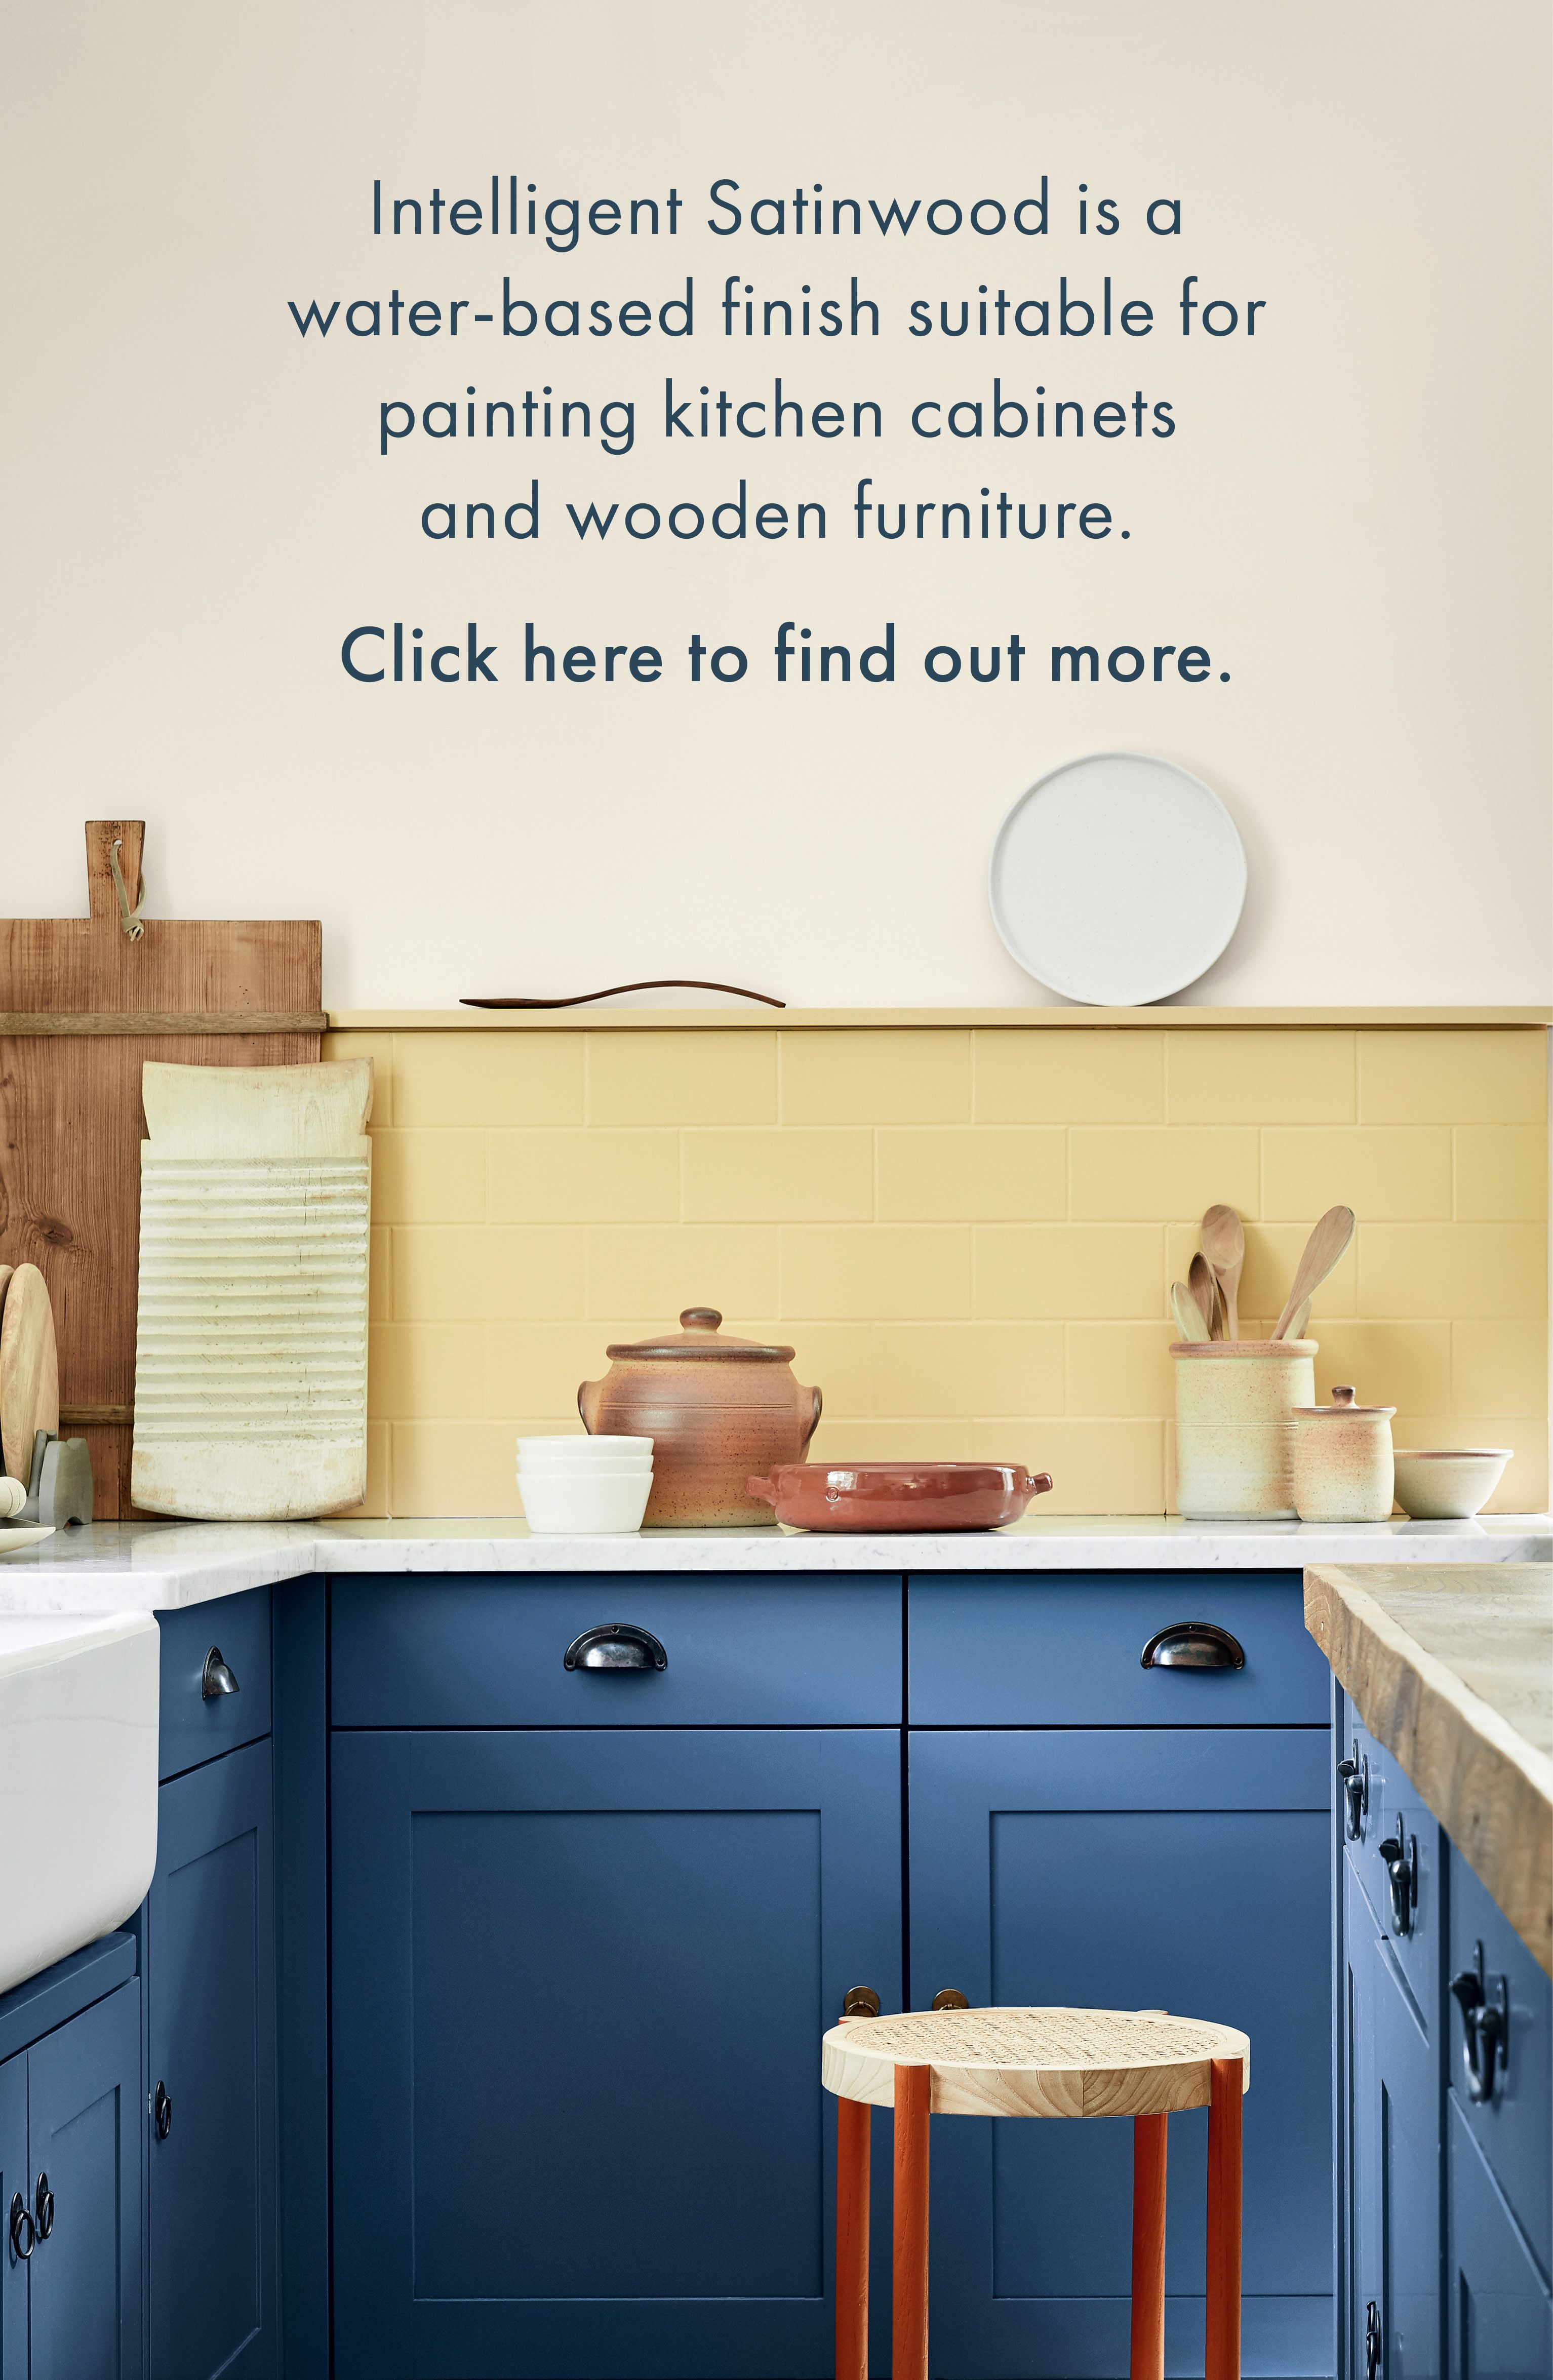 Kitchens image by Cathie Bertola in 2020 | Painting ...